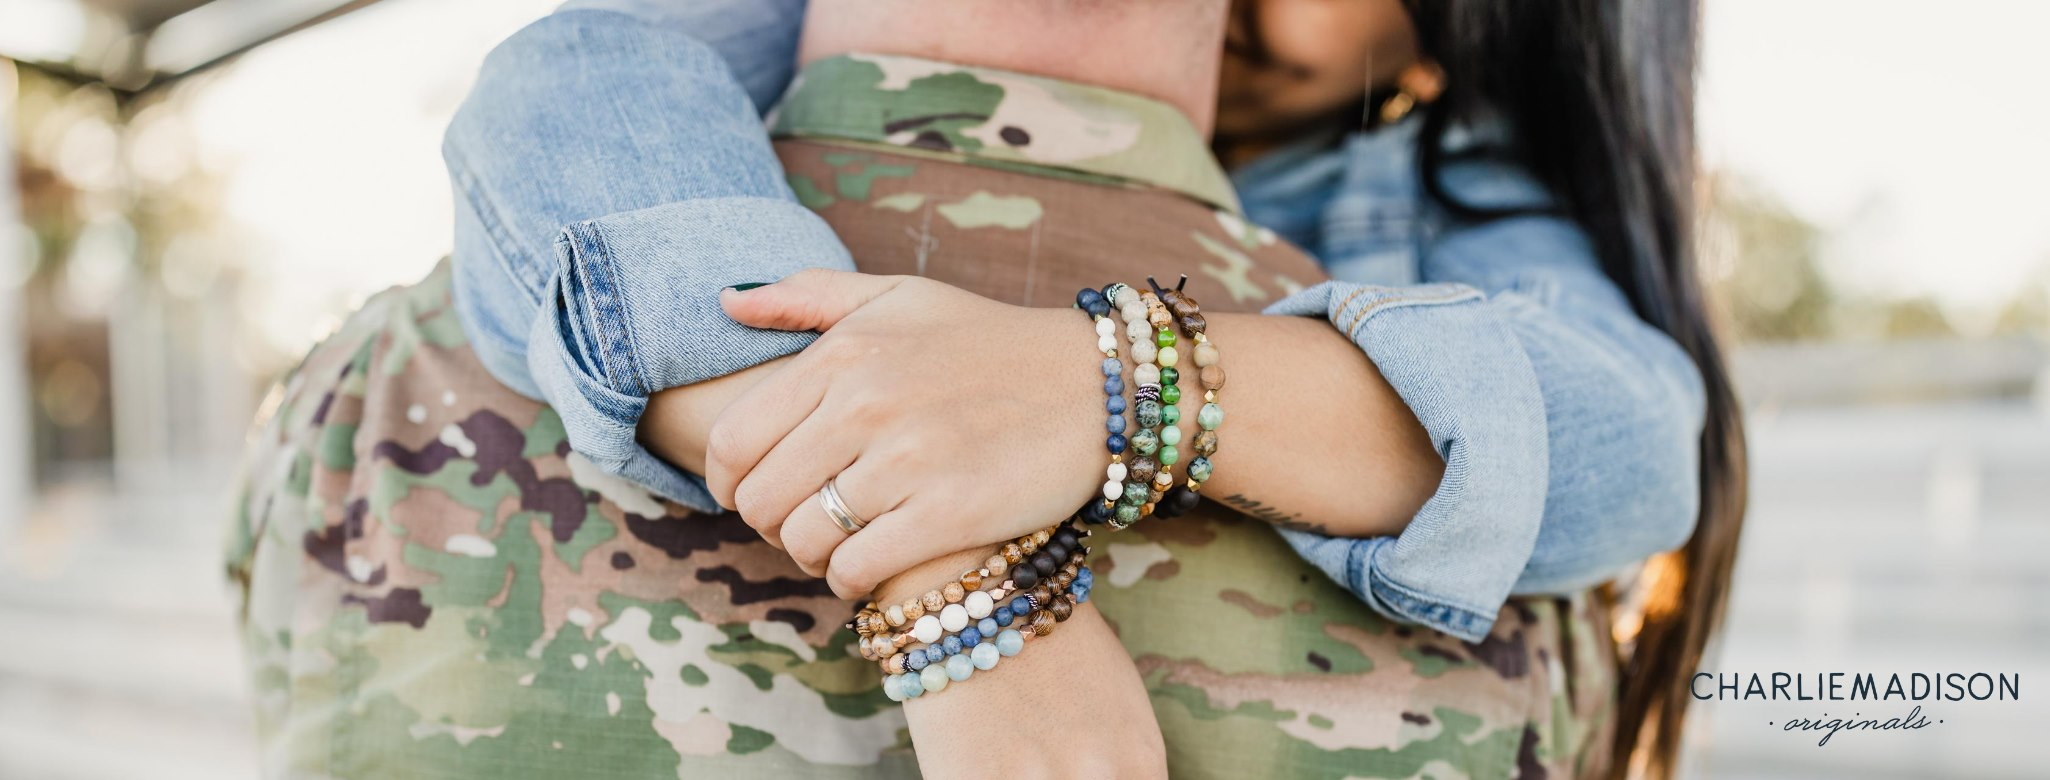 CharlieMadison (Jewelry company that gives back to military charities)